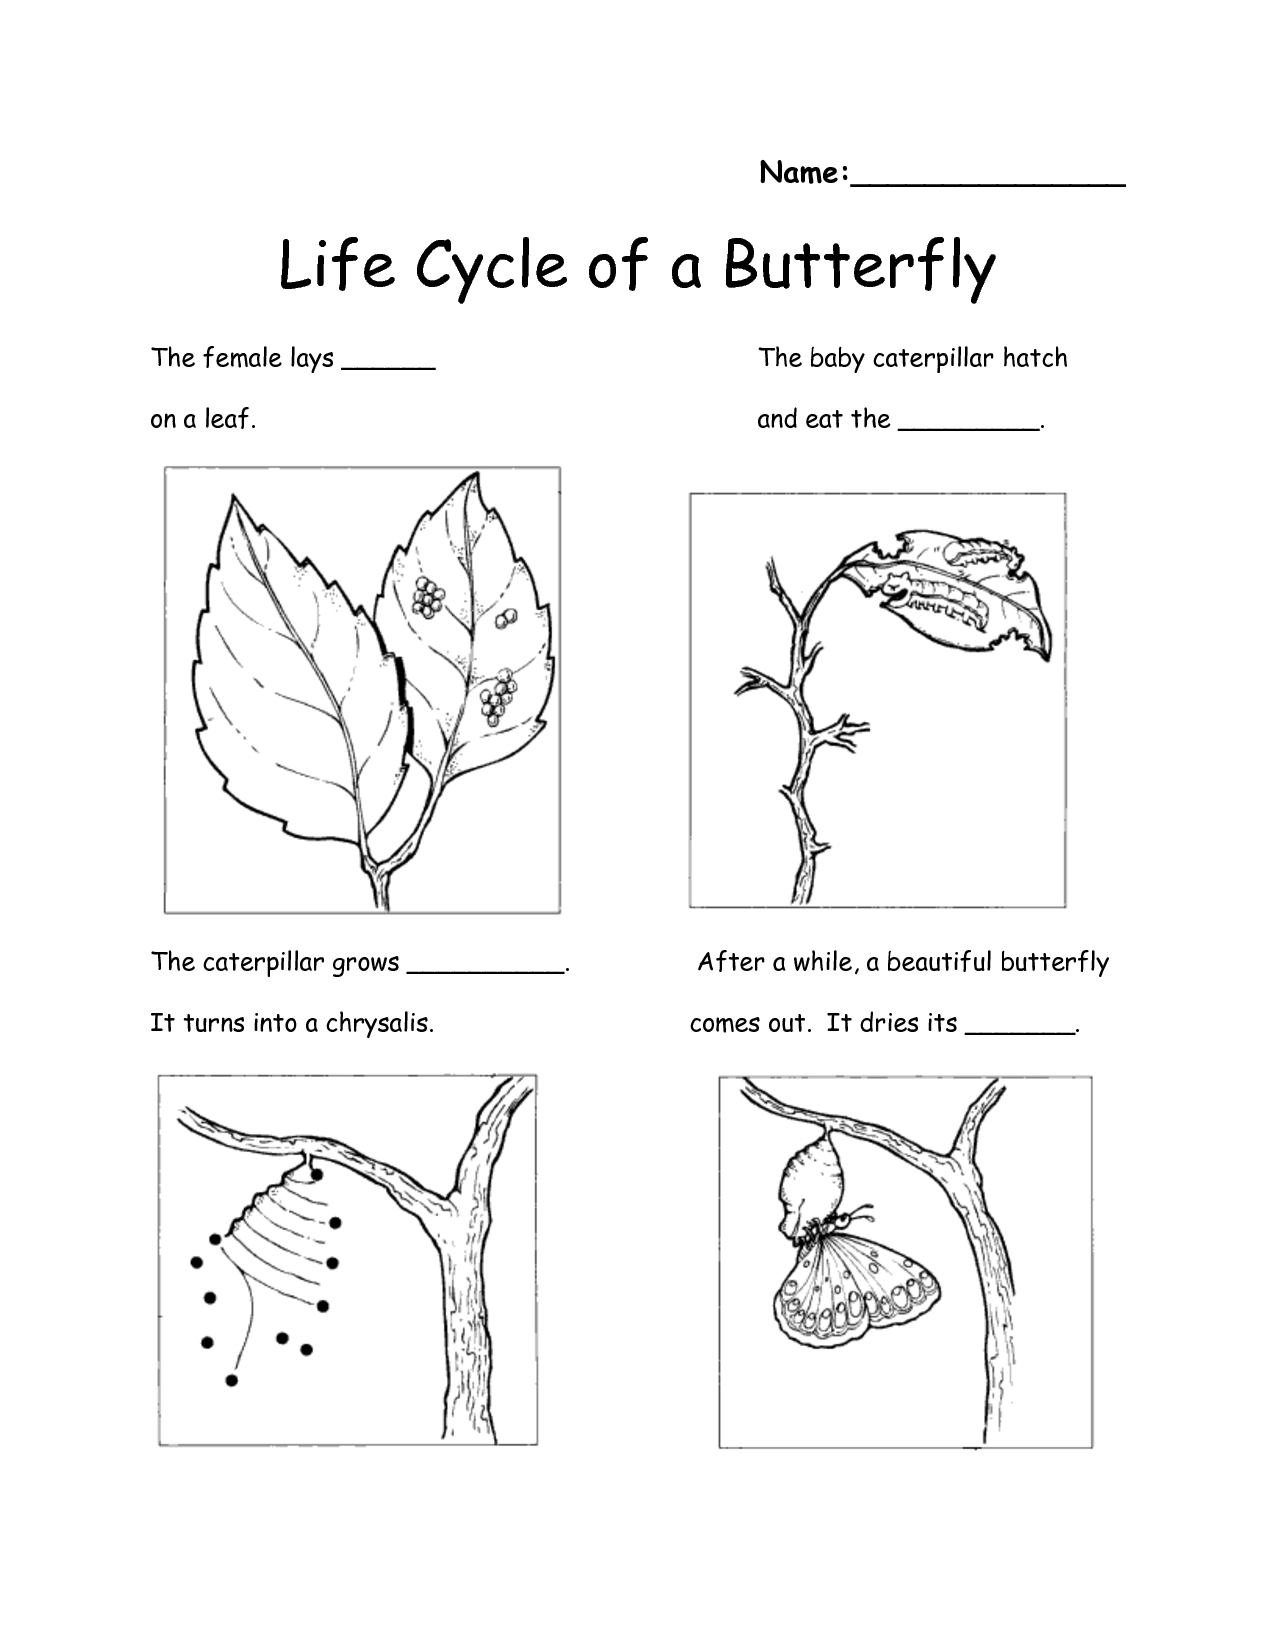 Worksheet Understanding Life Changes